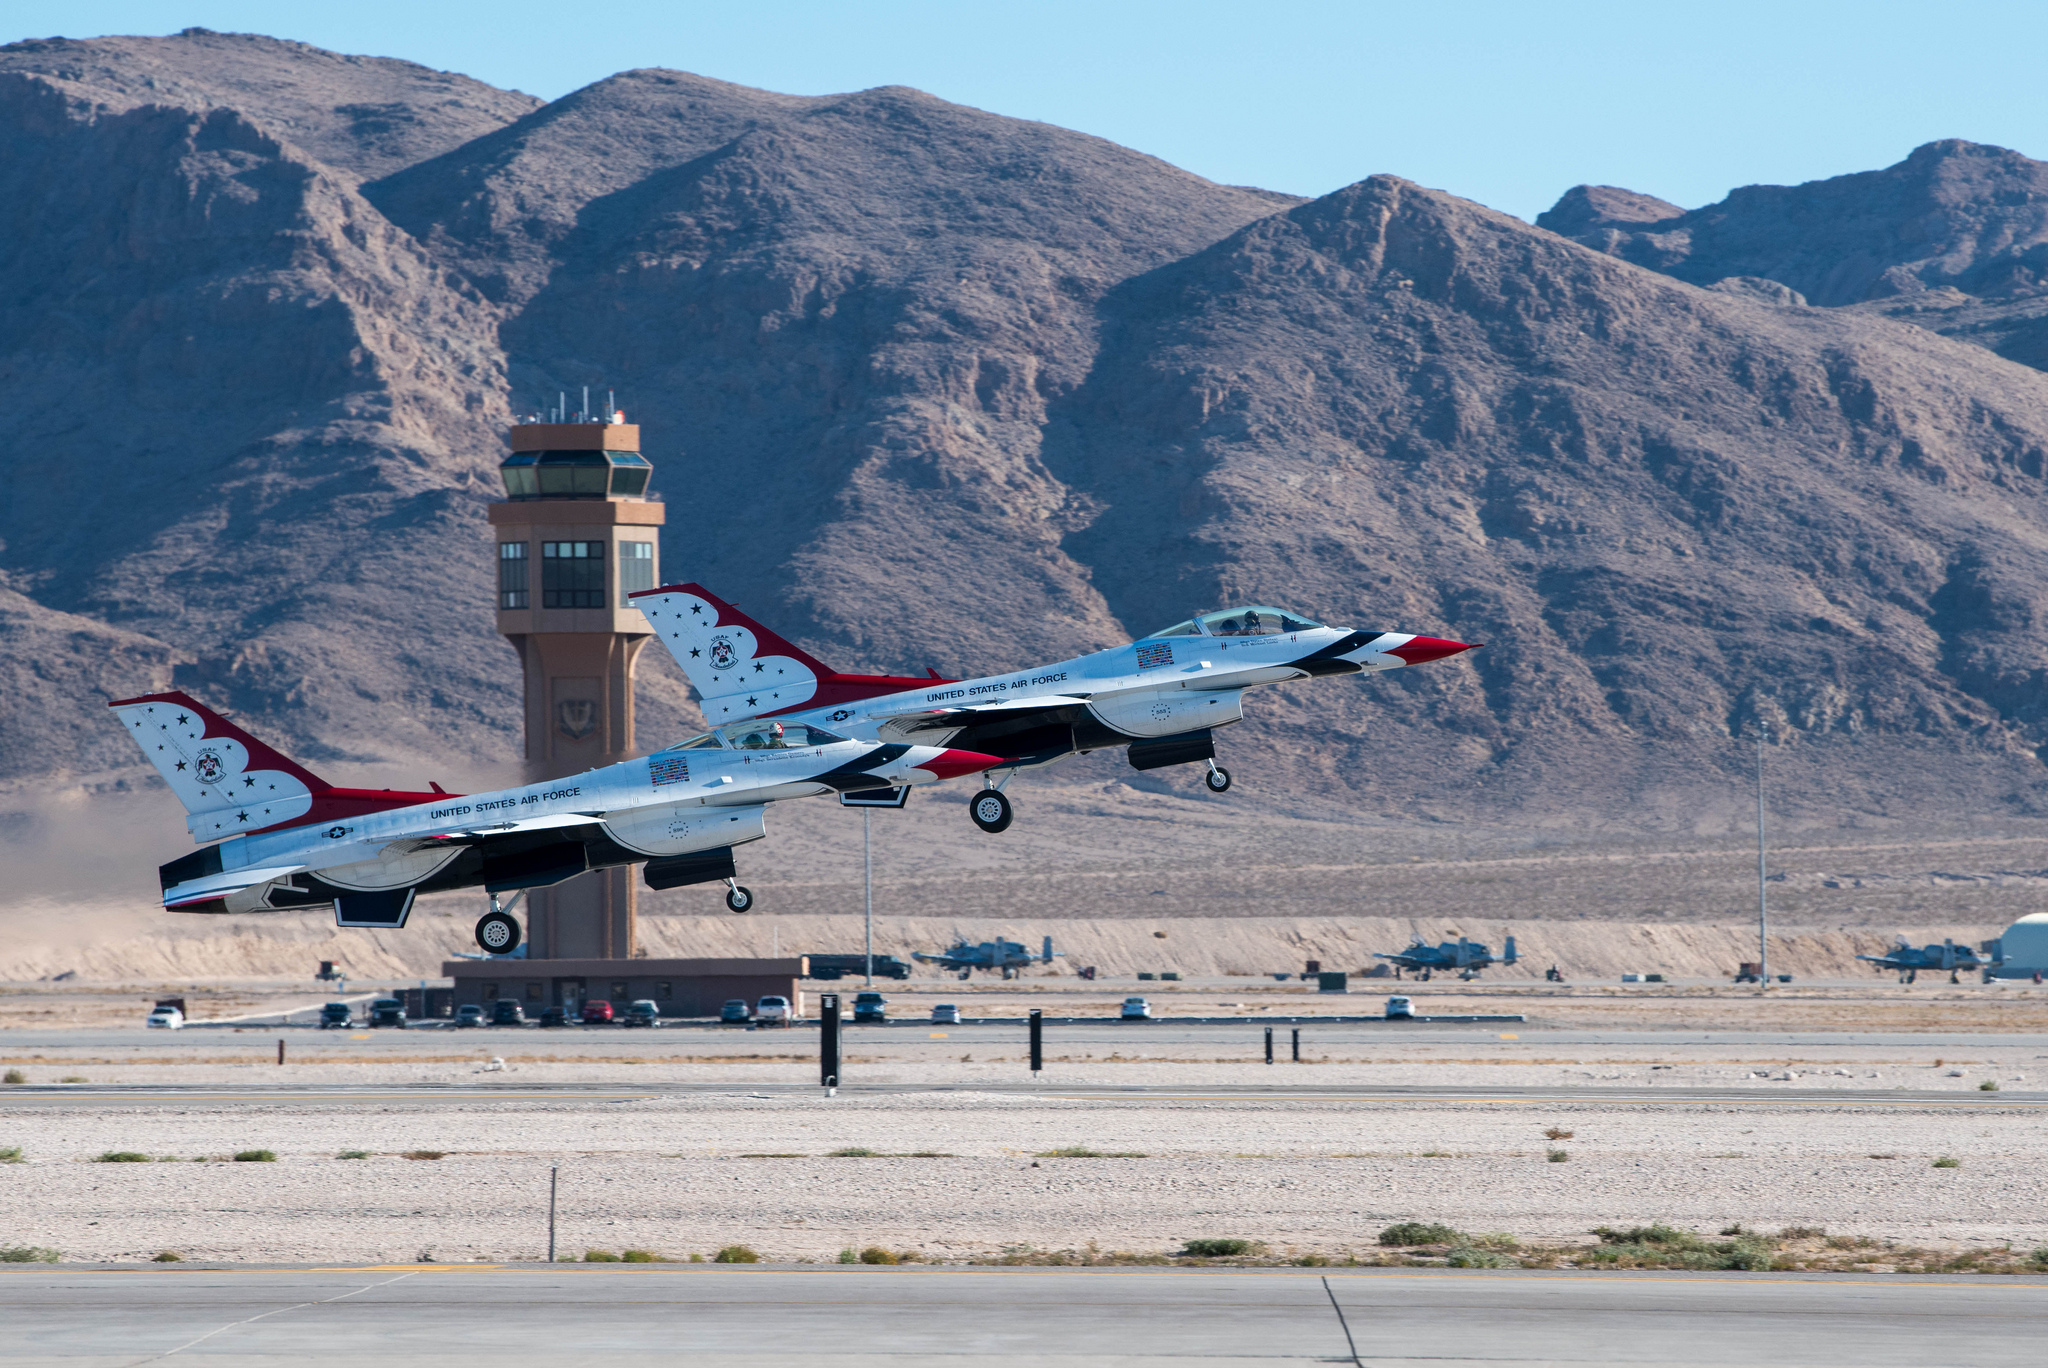 The U.S. Air Force Thunderbirds train for the 2019 show season at Nellis Air Force Base, Nev., Jan 3. 2019. (Staff. Sgt. Ashley Corkins/Air Force)